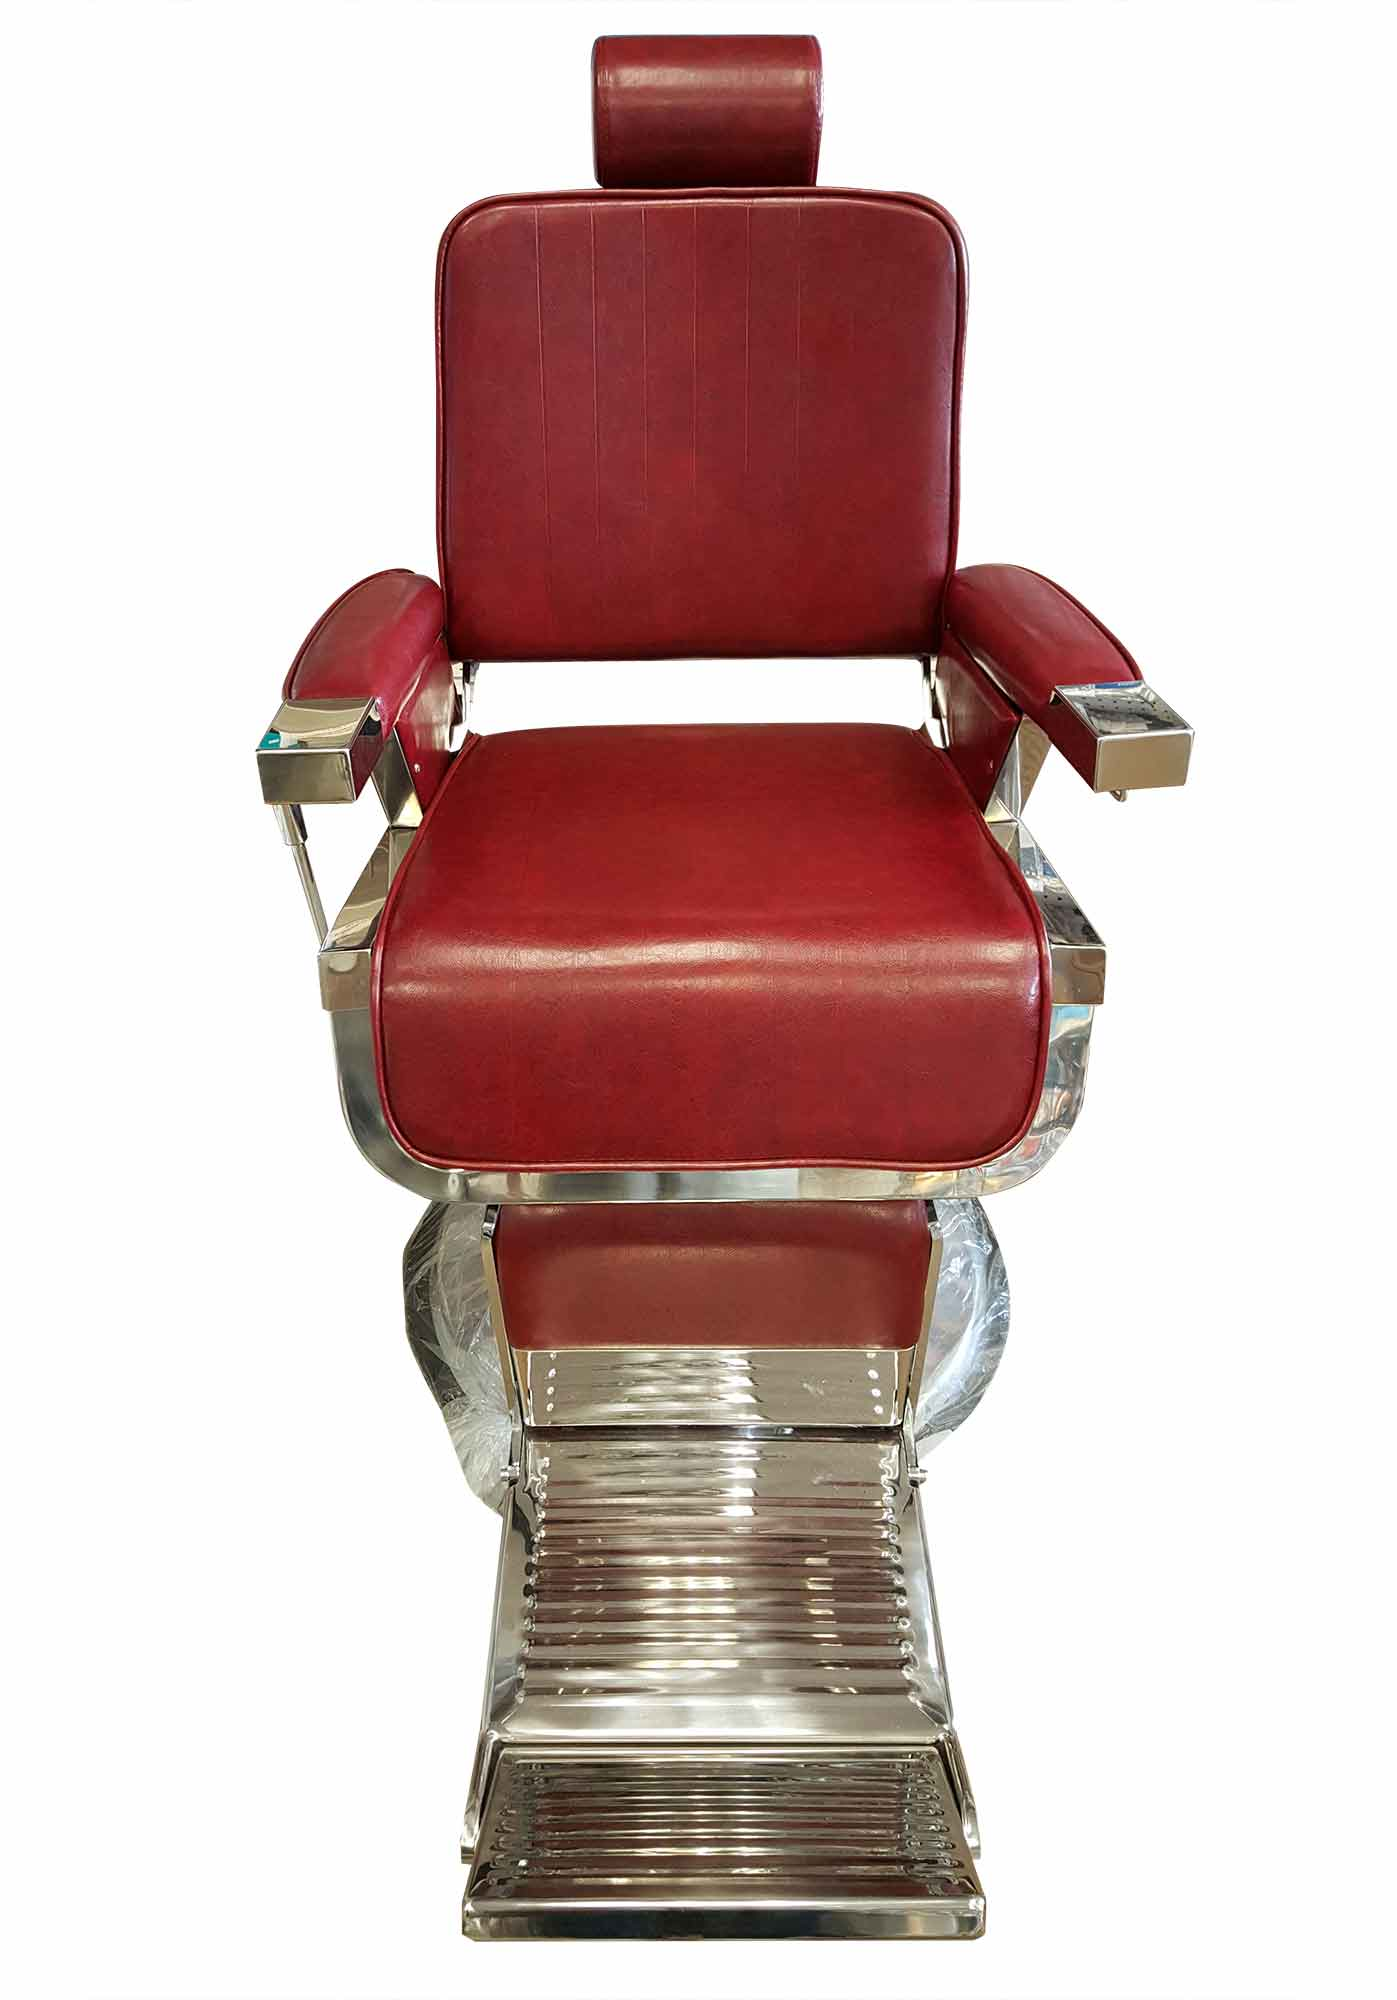 Barber Chairs Hydraulic Barber Chair Xz 31819 Barber Depot